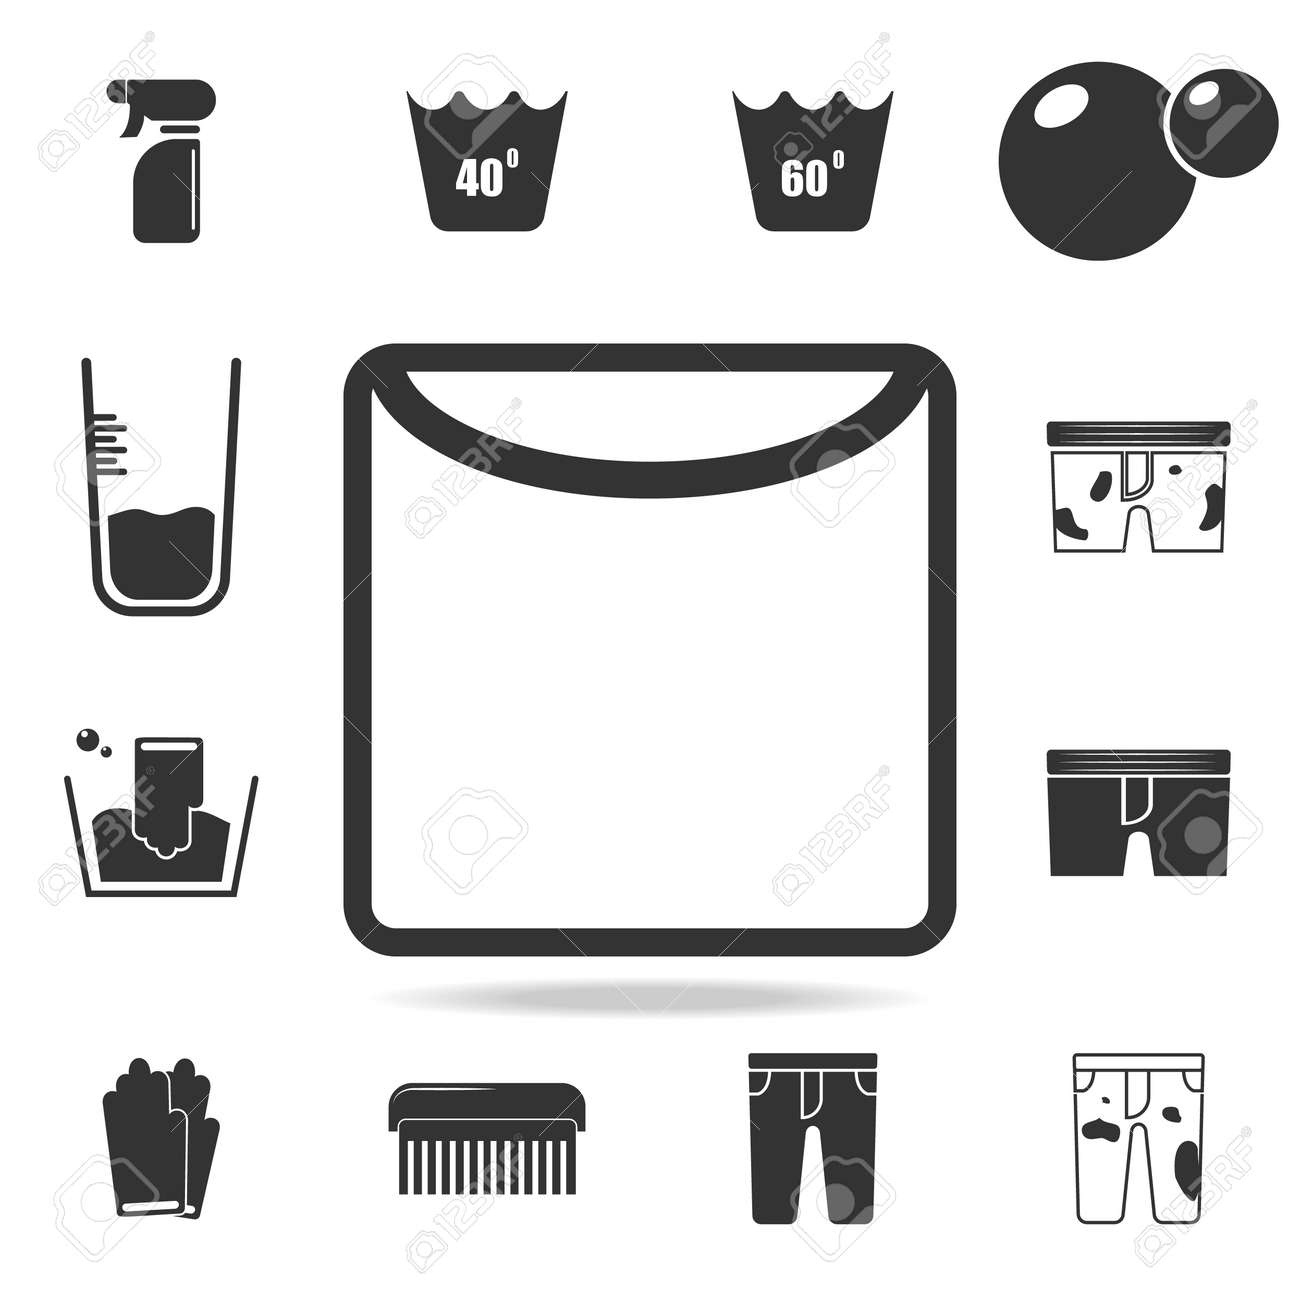 Drying in unfolded form icon  Detailed set of laundry icons